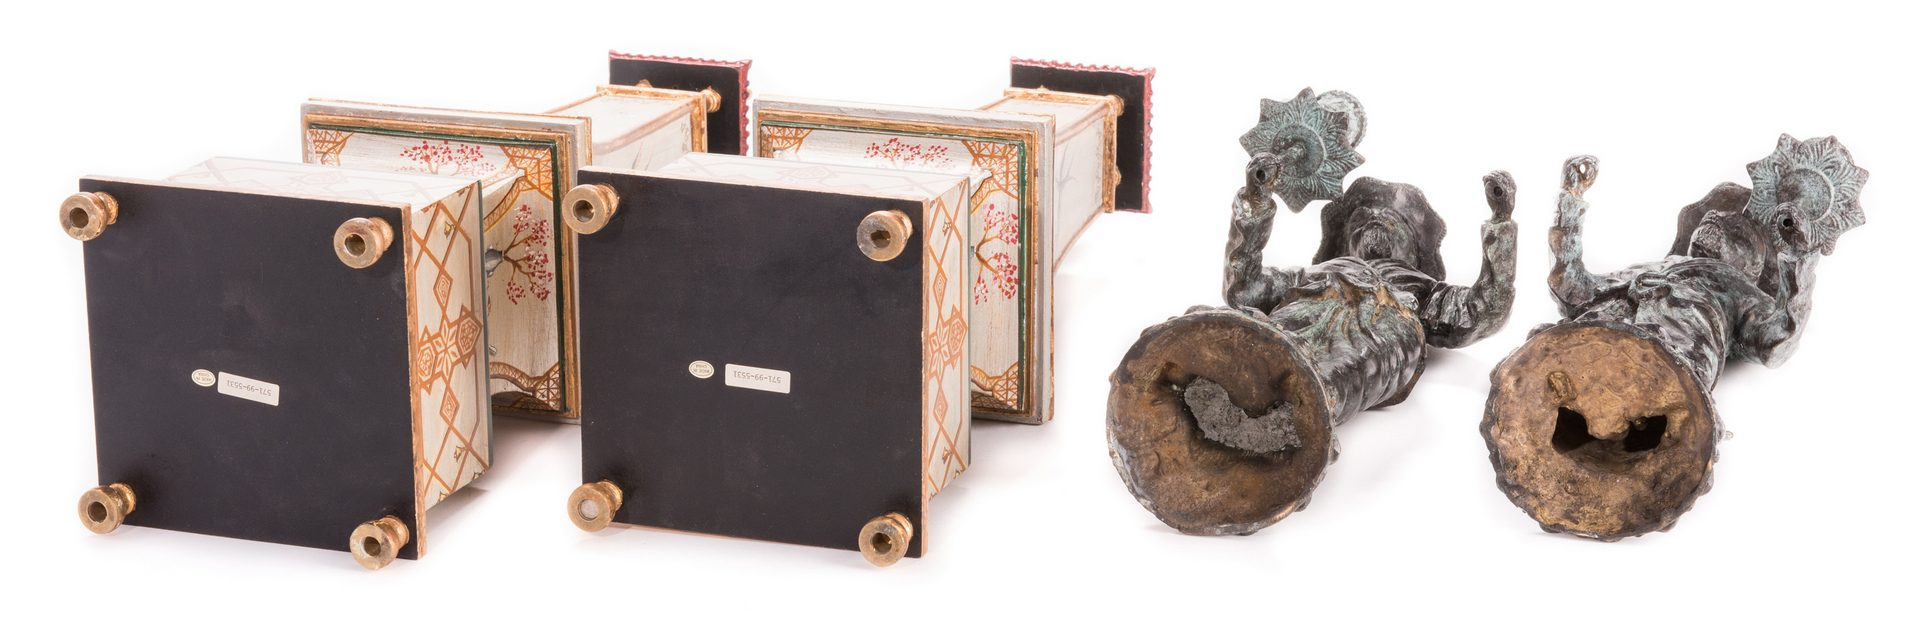 Lot 729: 4 Decorative Chinoiserie Accessories